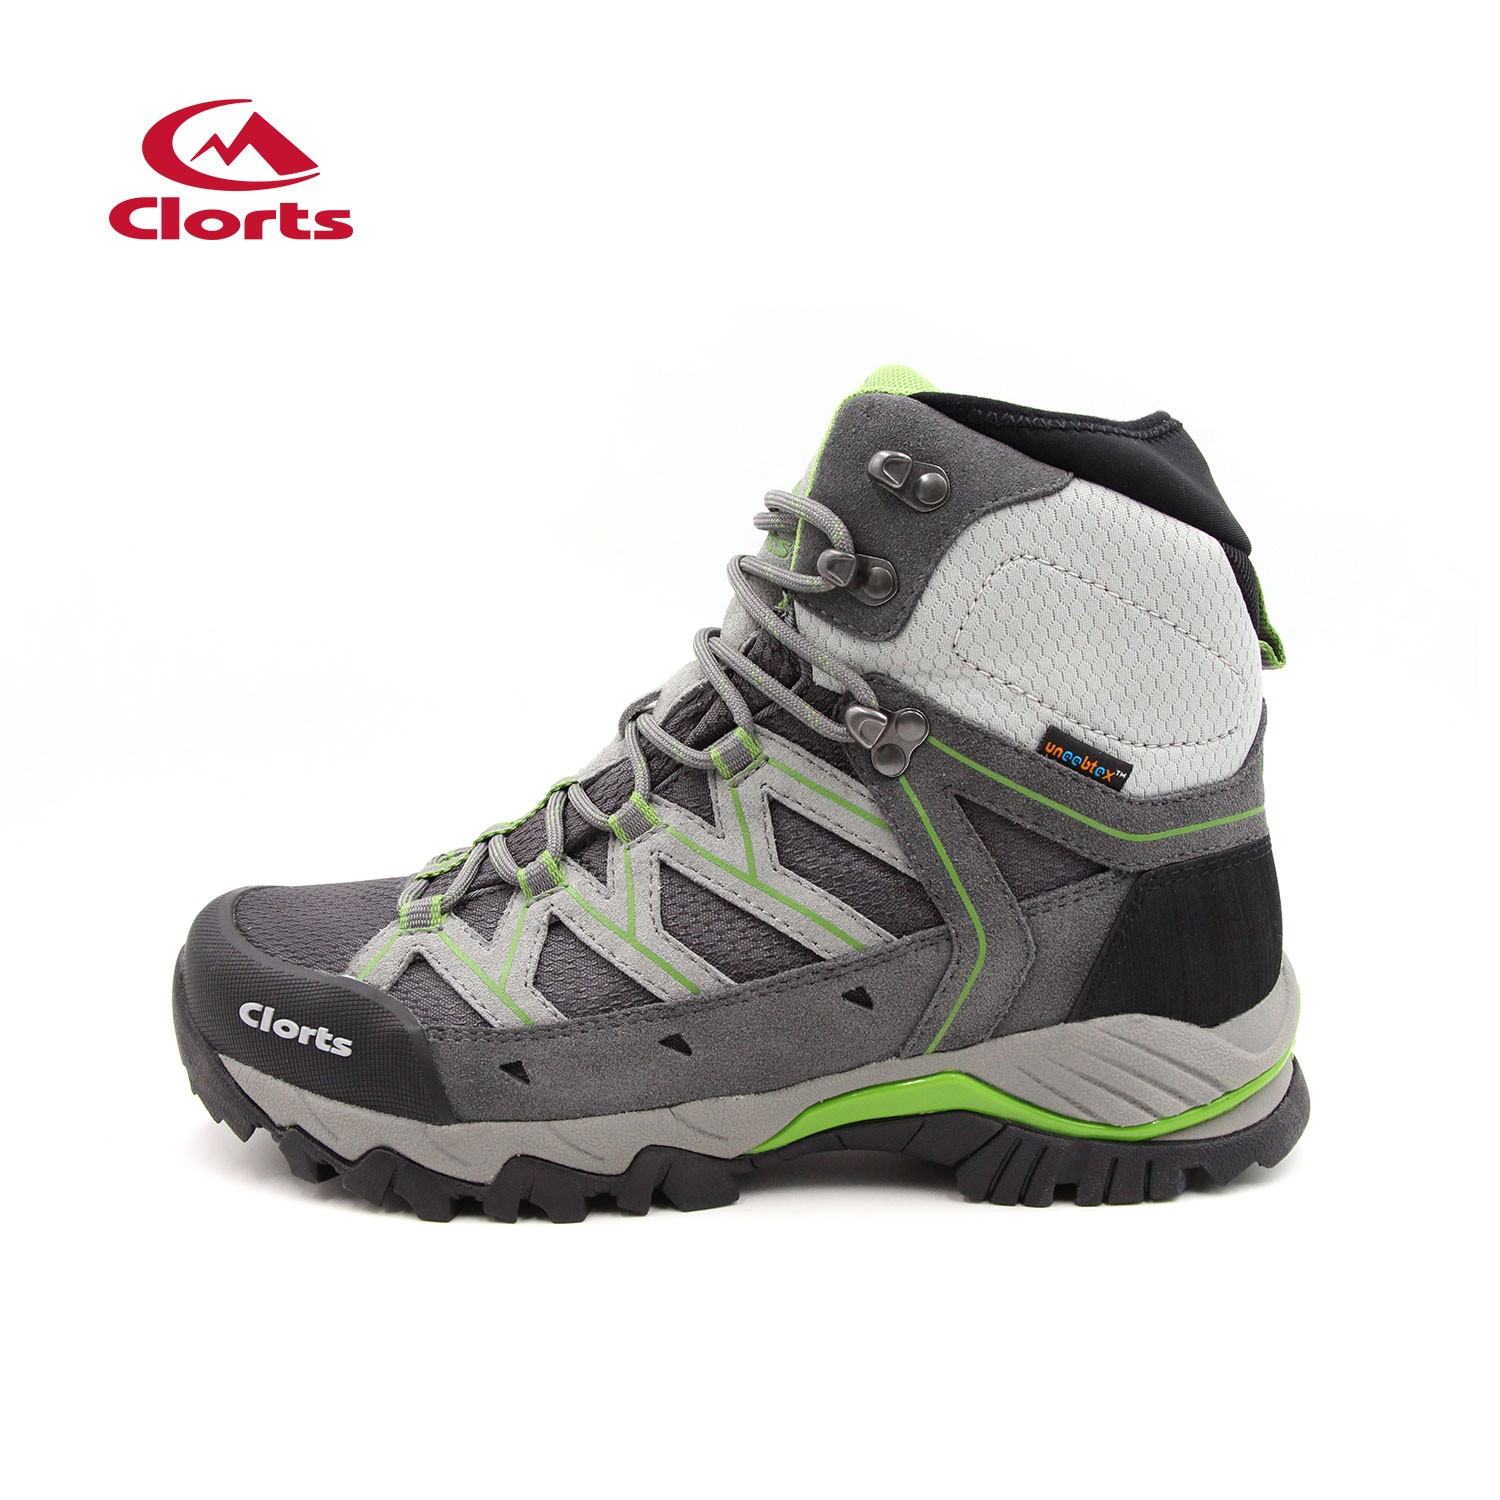 Clorts Adults Backpacking Hiking Boots Green